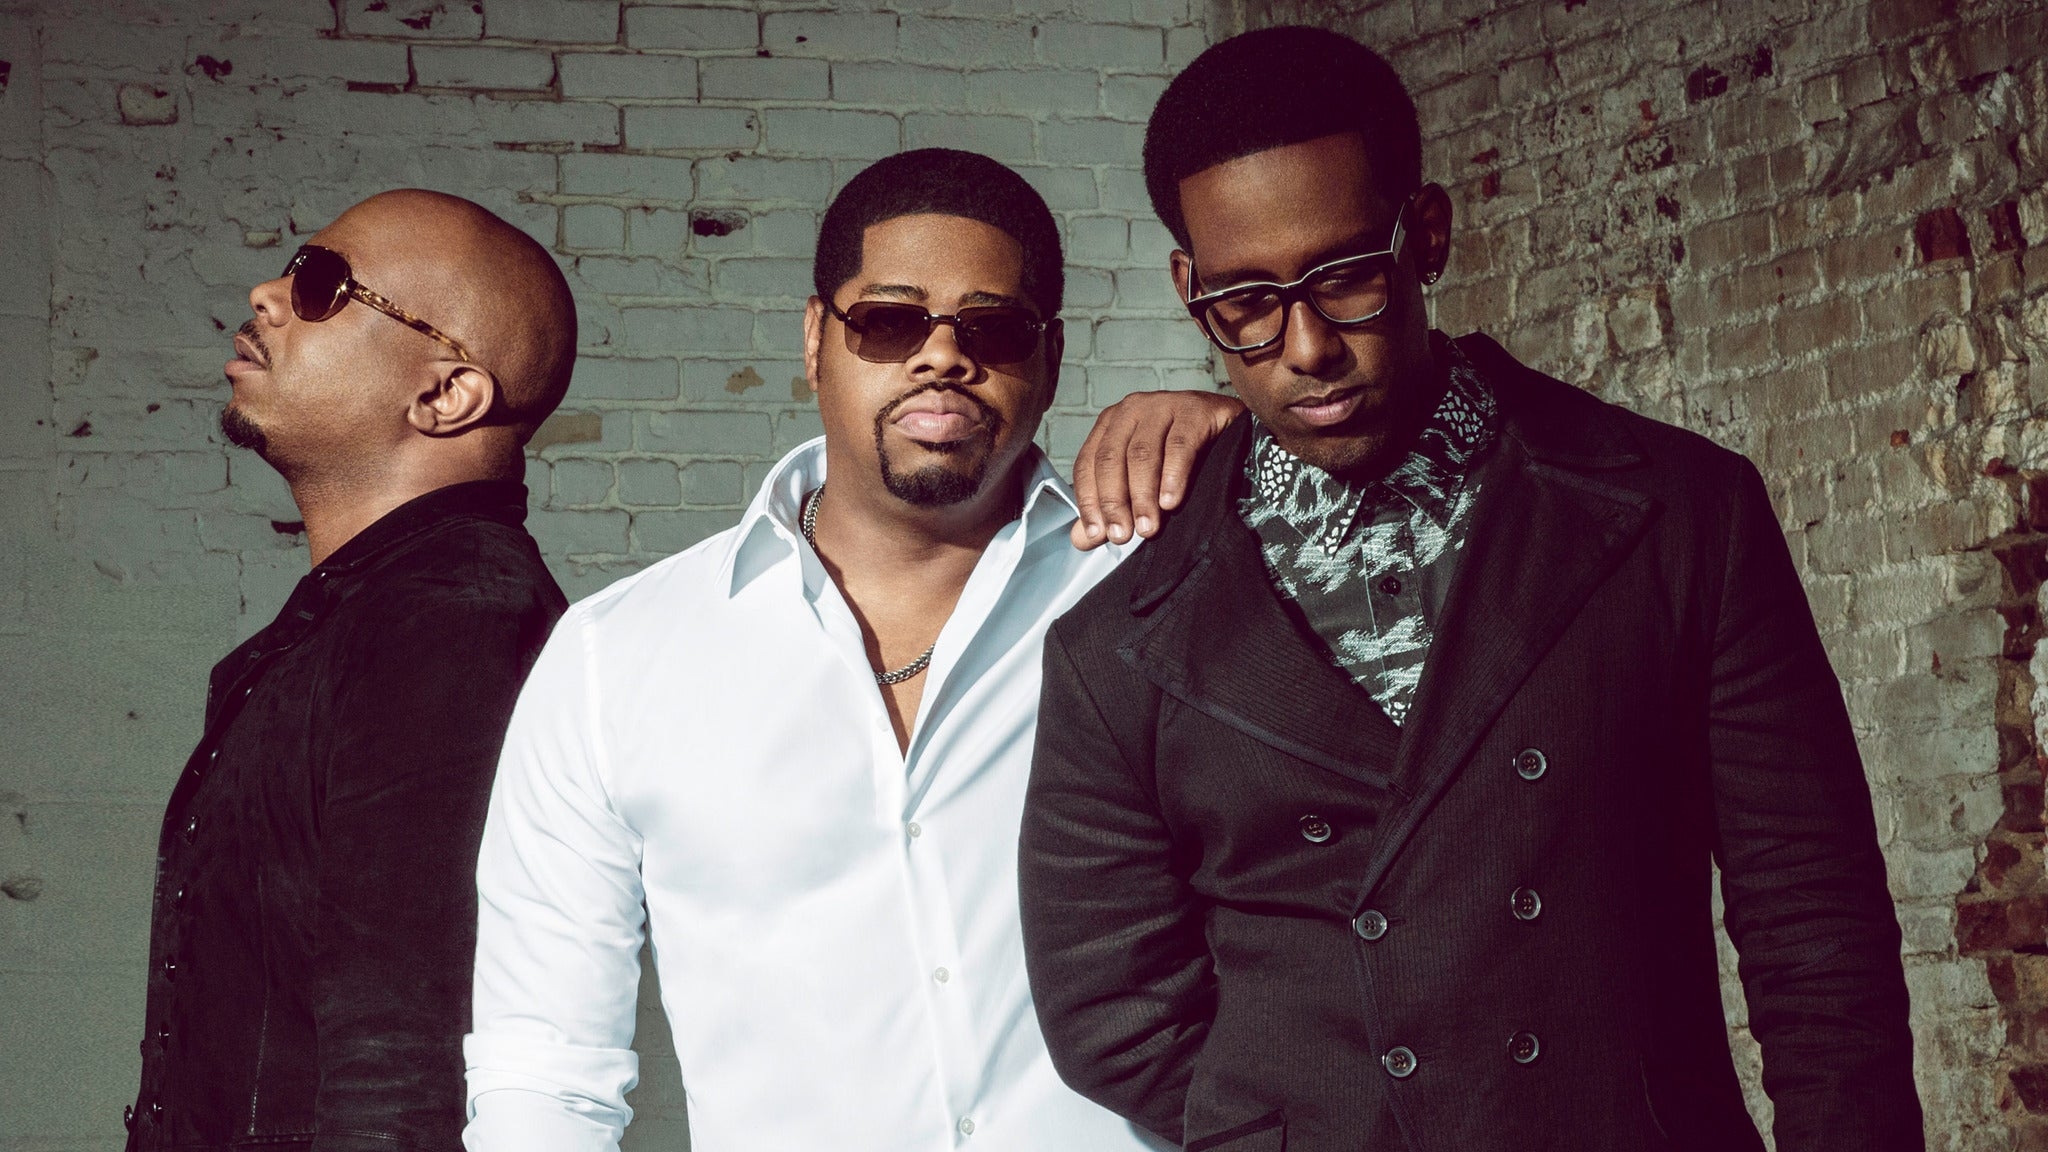 Boyz II Men at The Venue at Horseshoe Casino